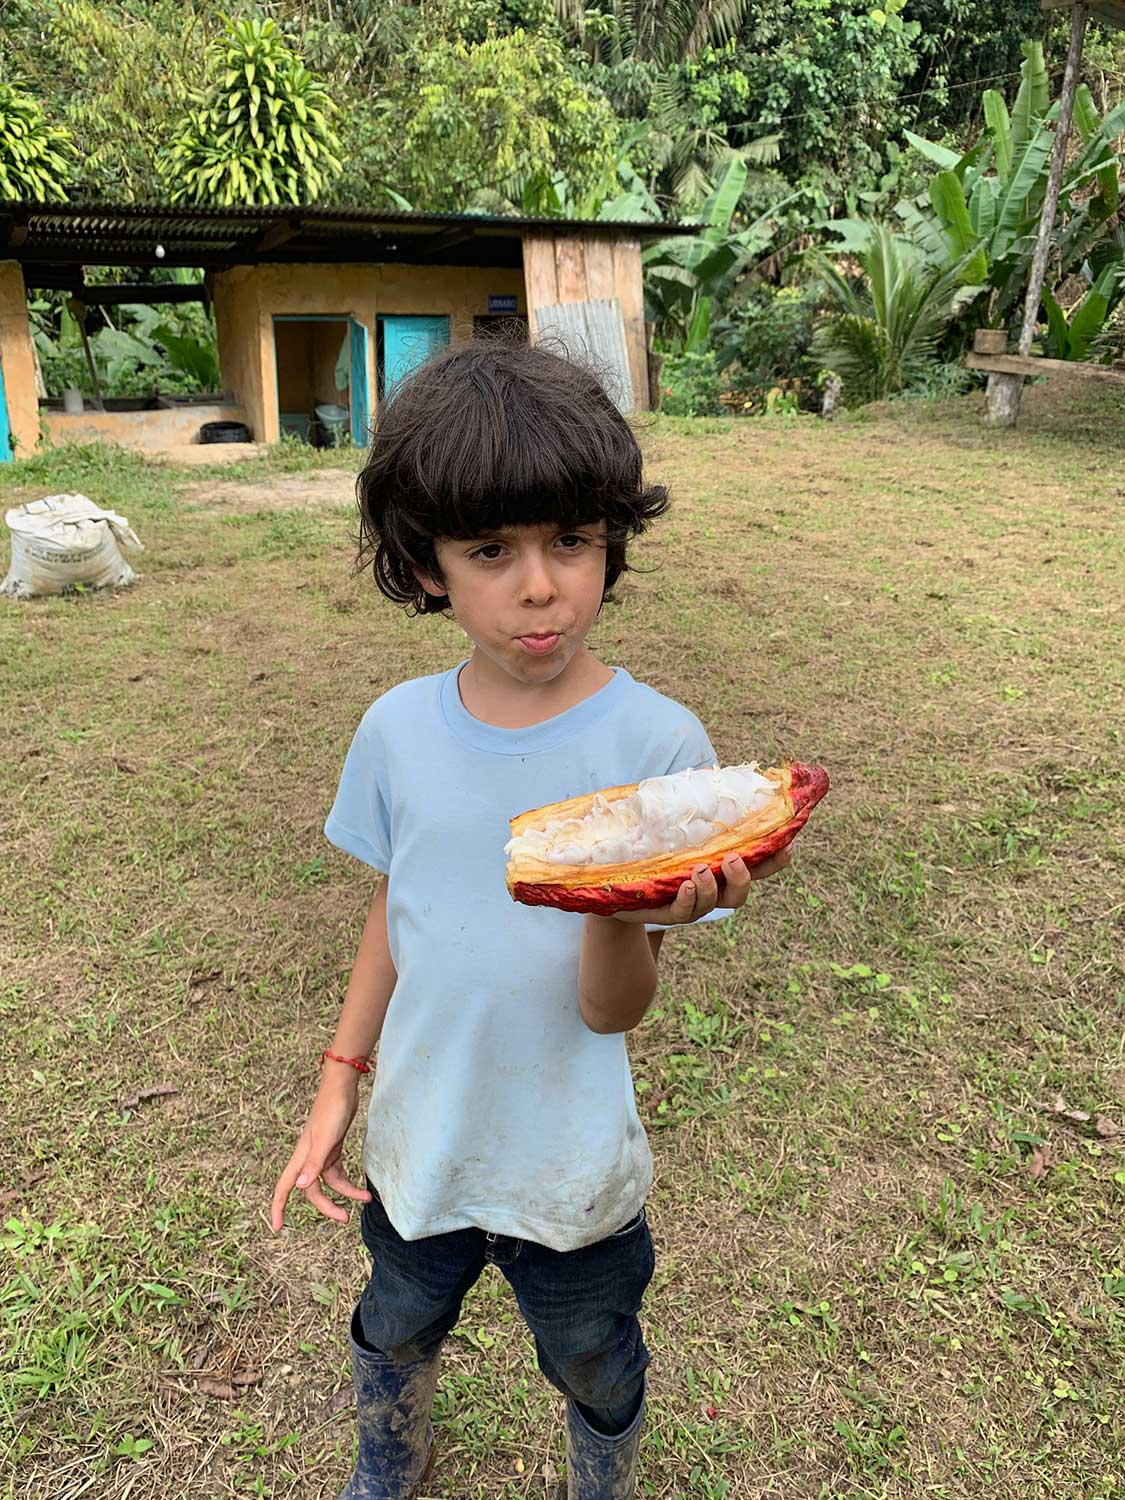 A young boy eats from a large exotic fruit